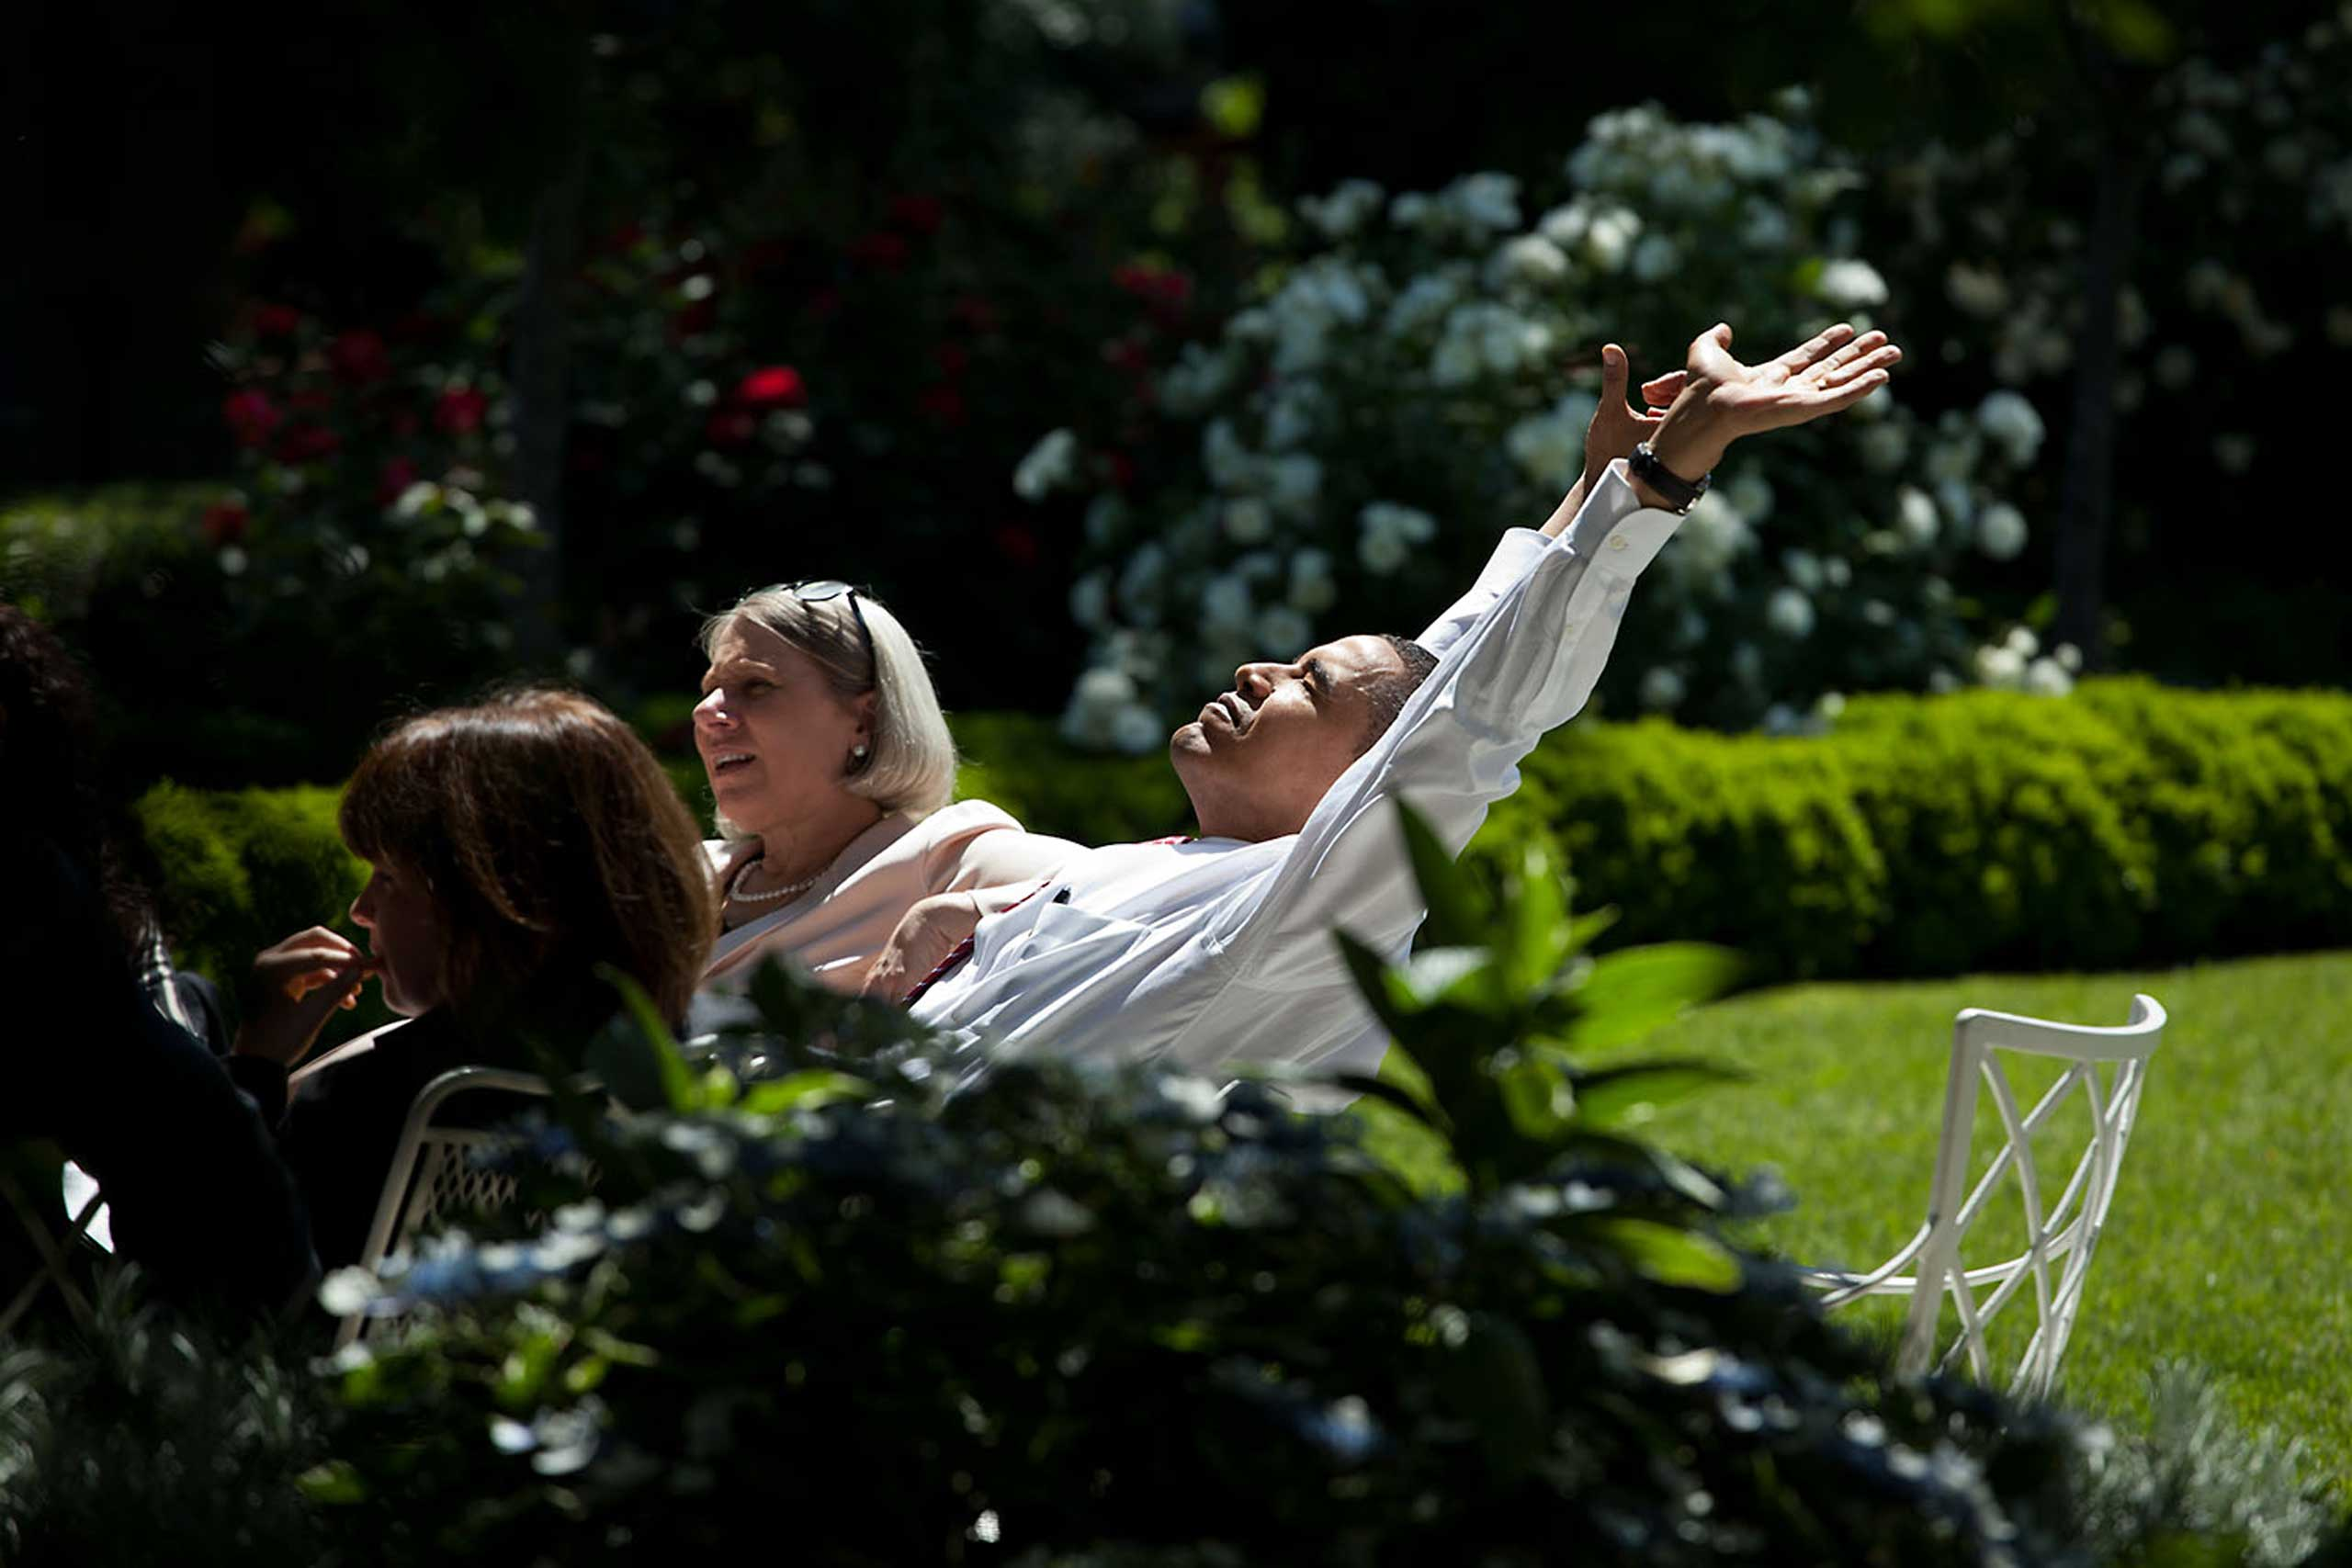 The President stretches during a senior advisors meeting in the Rose Garden, May 20, 2009.